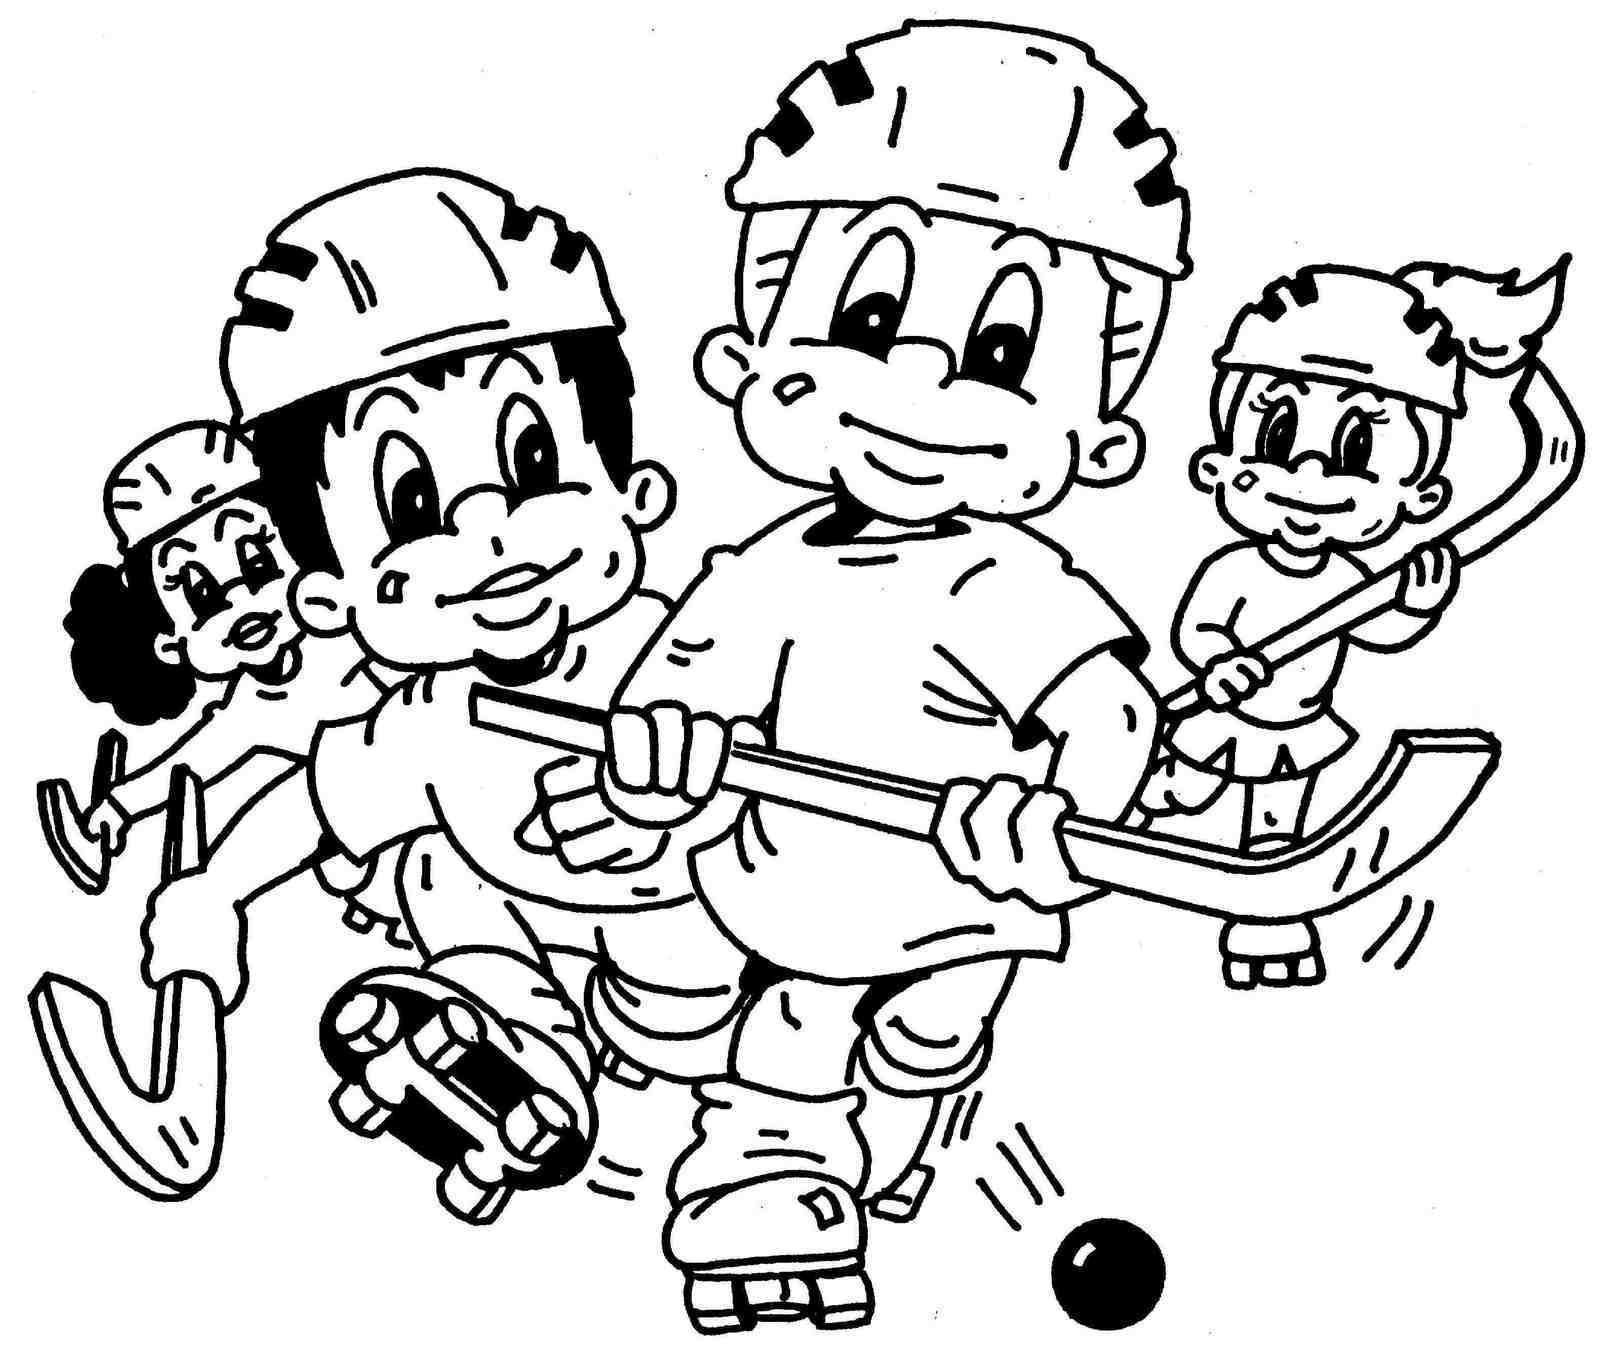 1600x1348 Hockey Kids Coloring Sheet Printable Sport Coloring Page